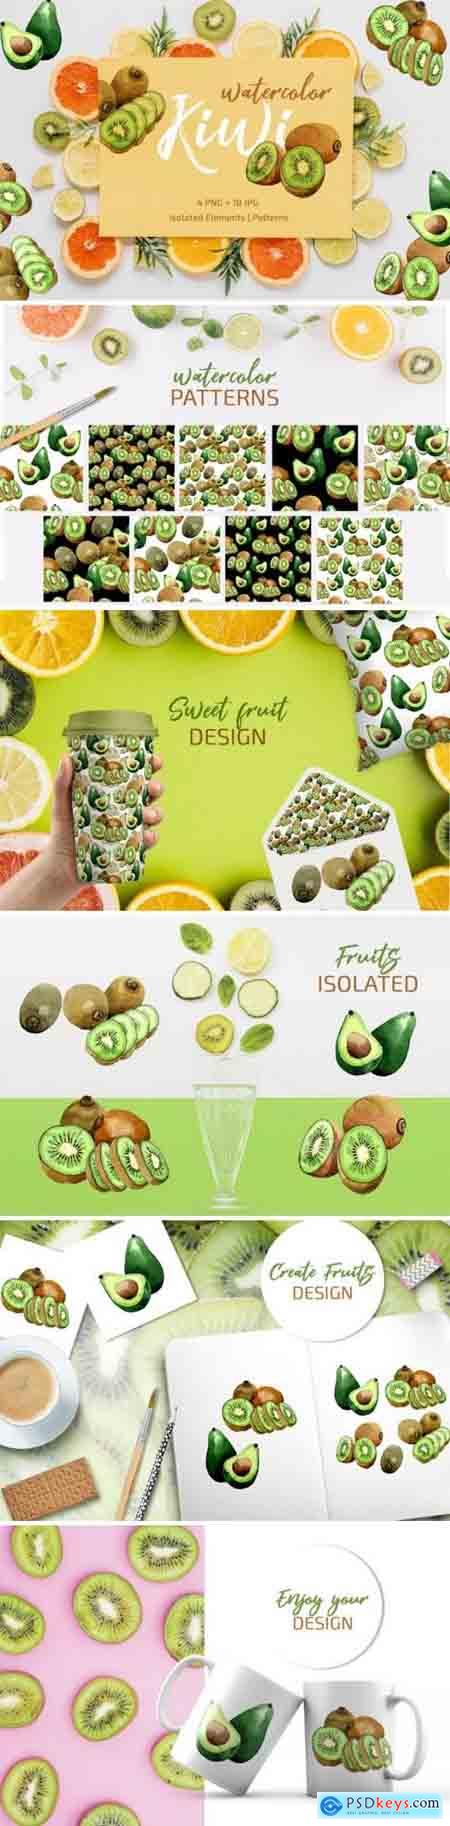 Creativemaket Kiwi Green fresh watercolor png